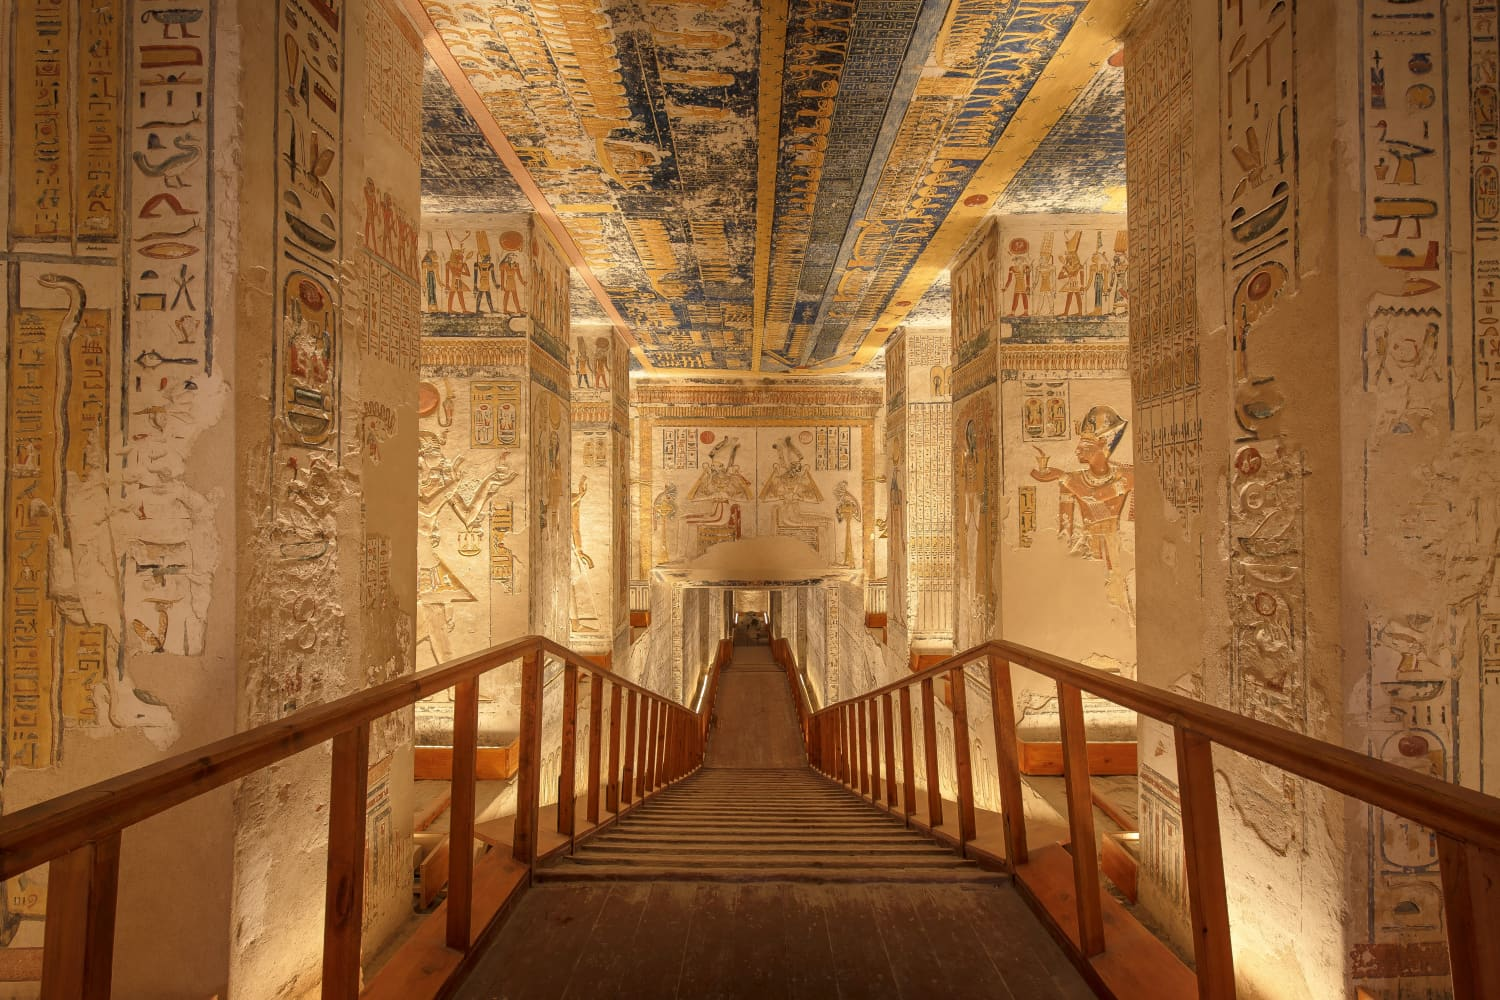 You Can Virtually Tour The Egyptian Tomb Of Pharaoh Ramses VI